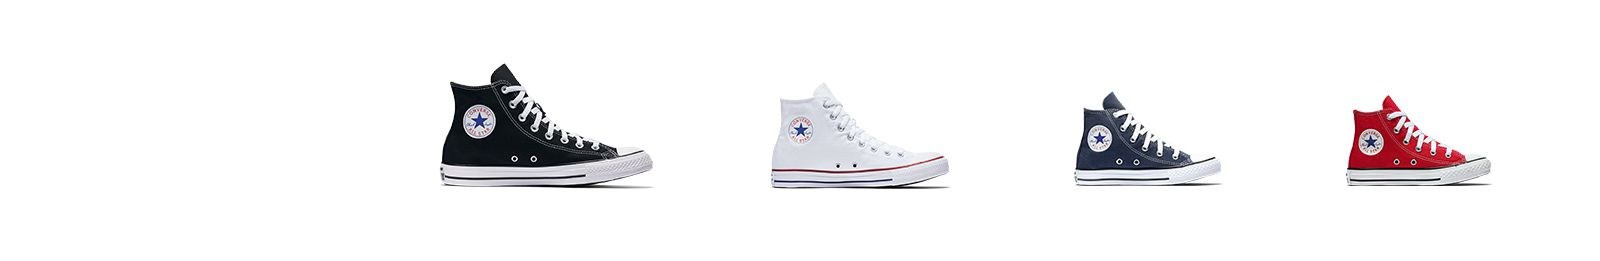 HQ Converse Wallpapers | File 22.77Kb